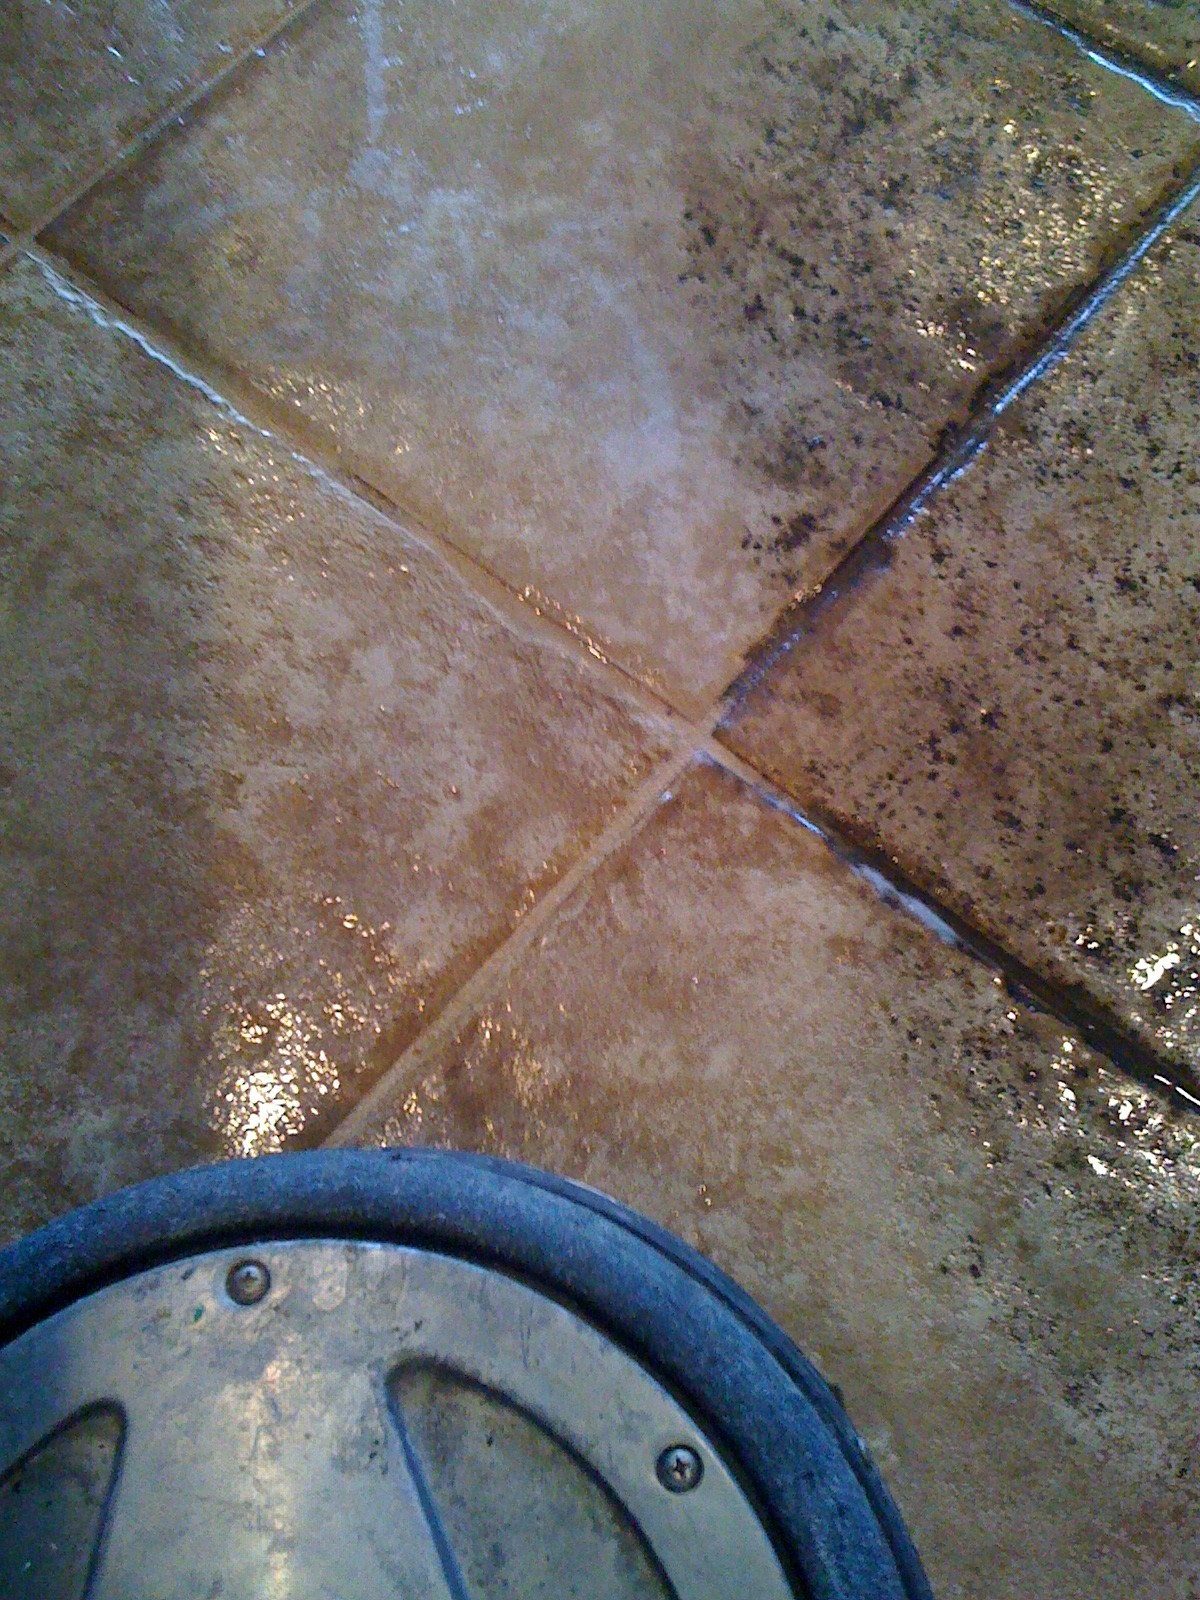 Grout Cleaning Toronto - Grout Cleaning - Tile Cleaning